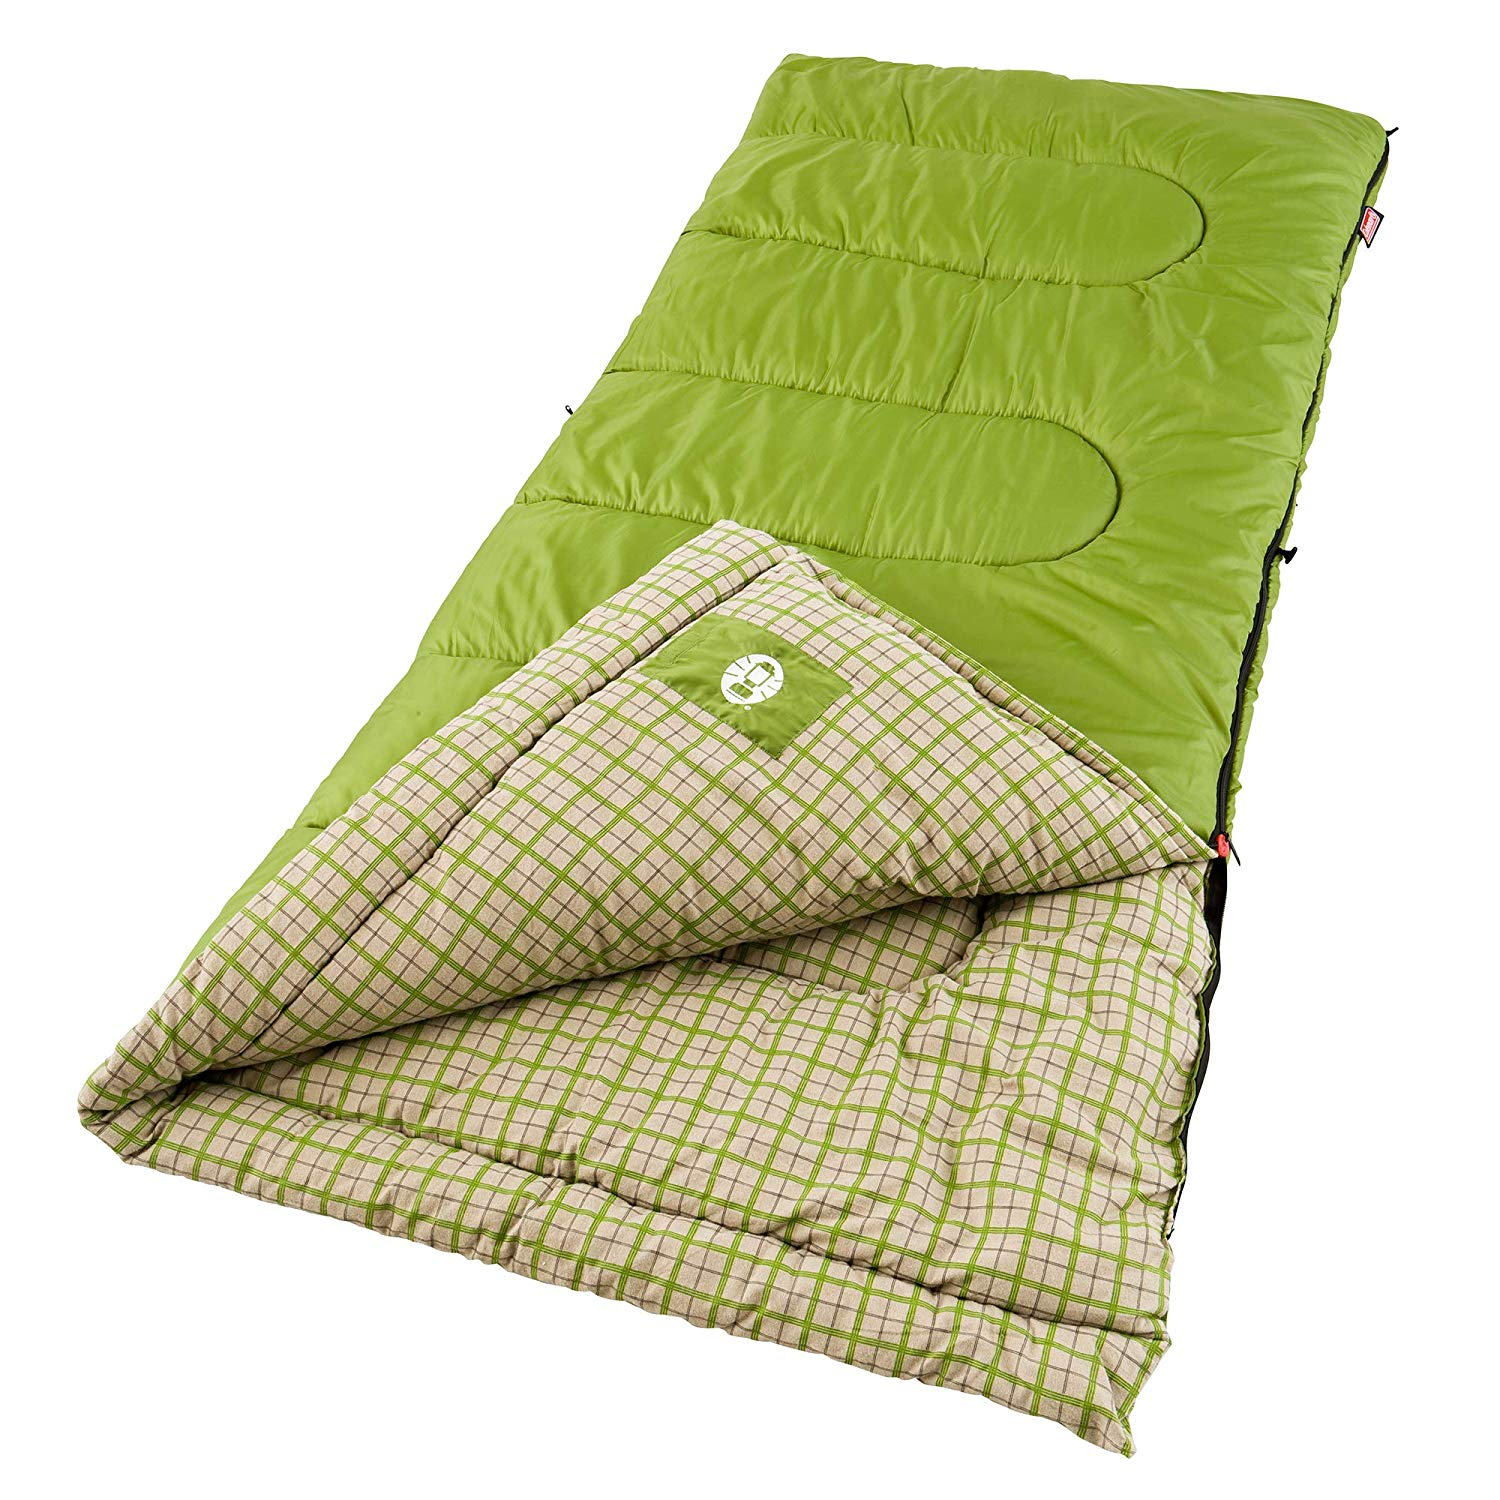 An image of Coleman Green Valley SS-SMS-765650 Cotton Flannel Sleeping Bag